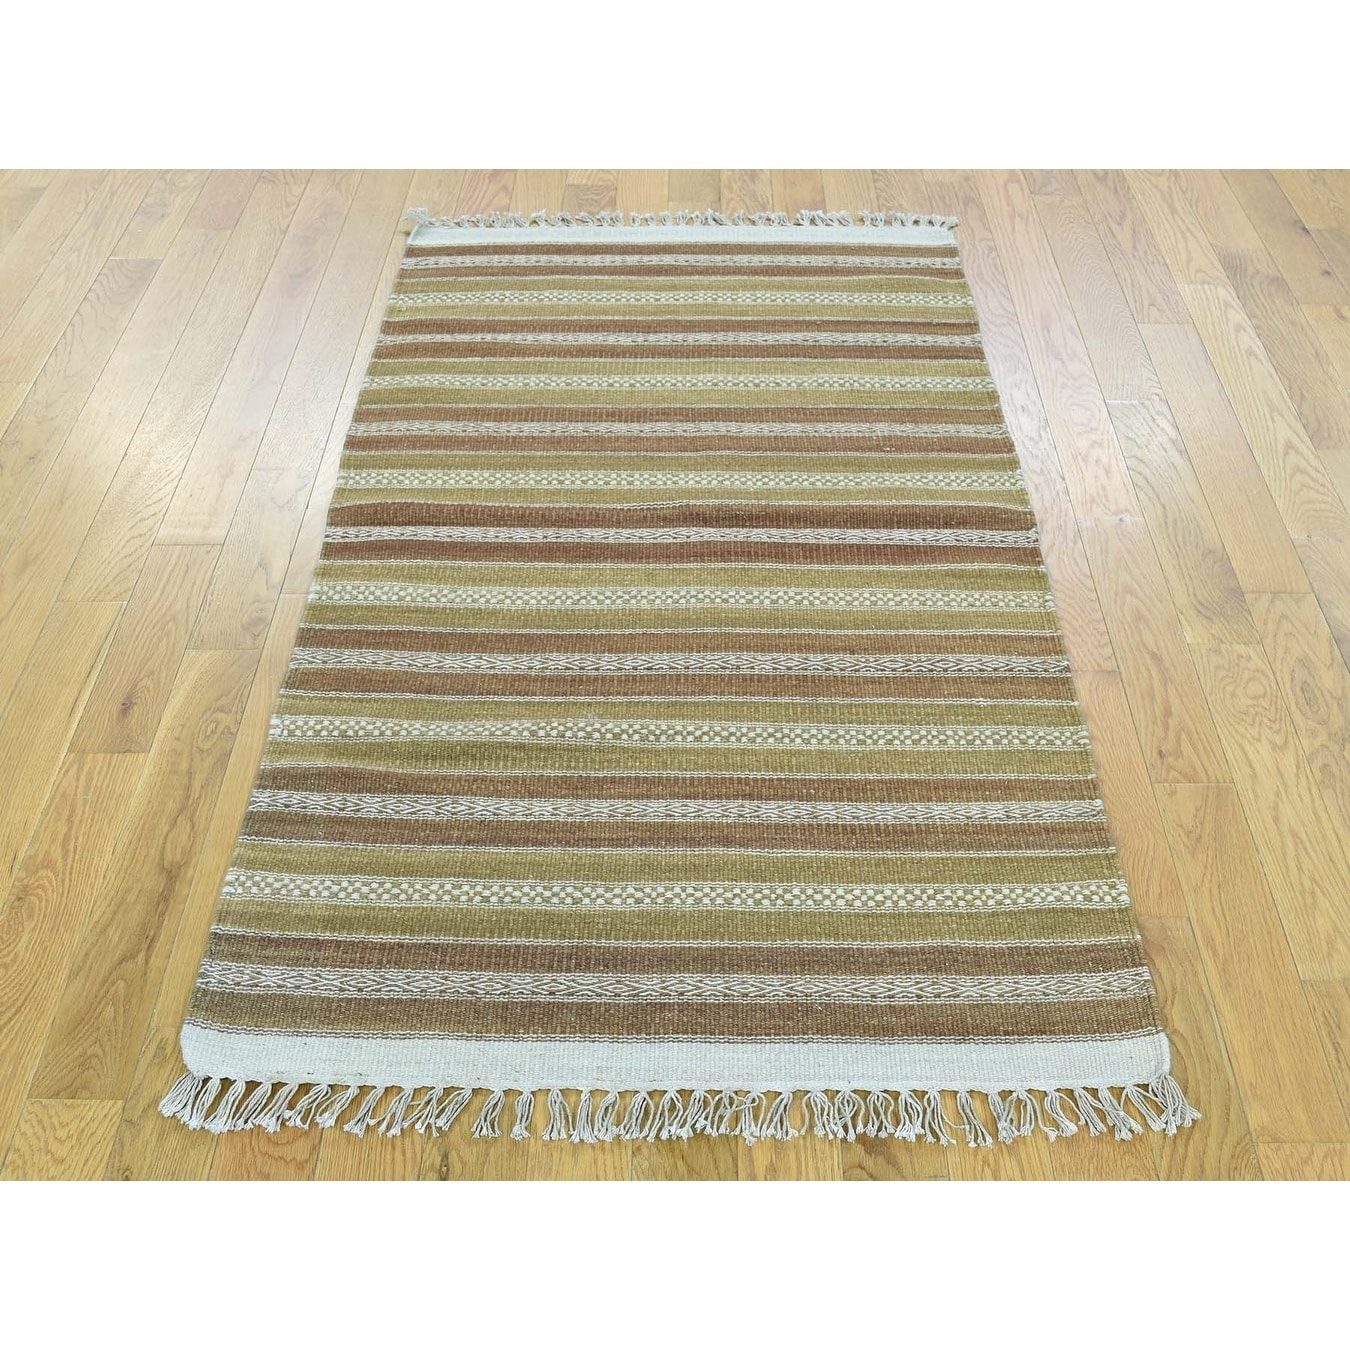 Hand Knotted Multicolored Flat Weave with Wool Oriental Rug - 29 x 51